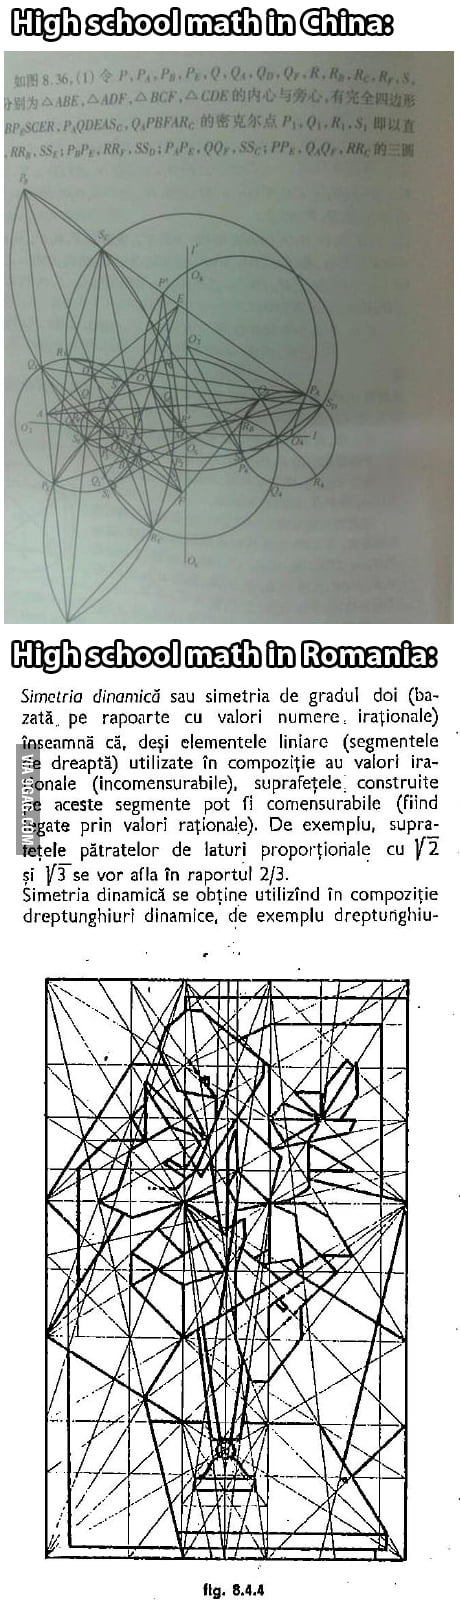 I'll raise you High school math in Romania.